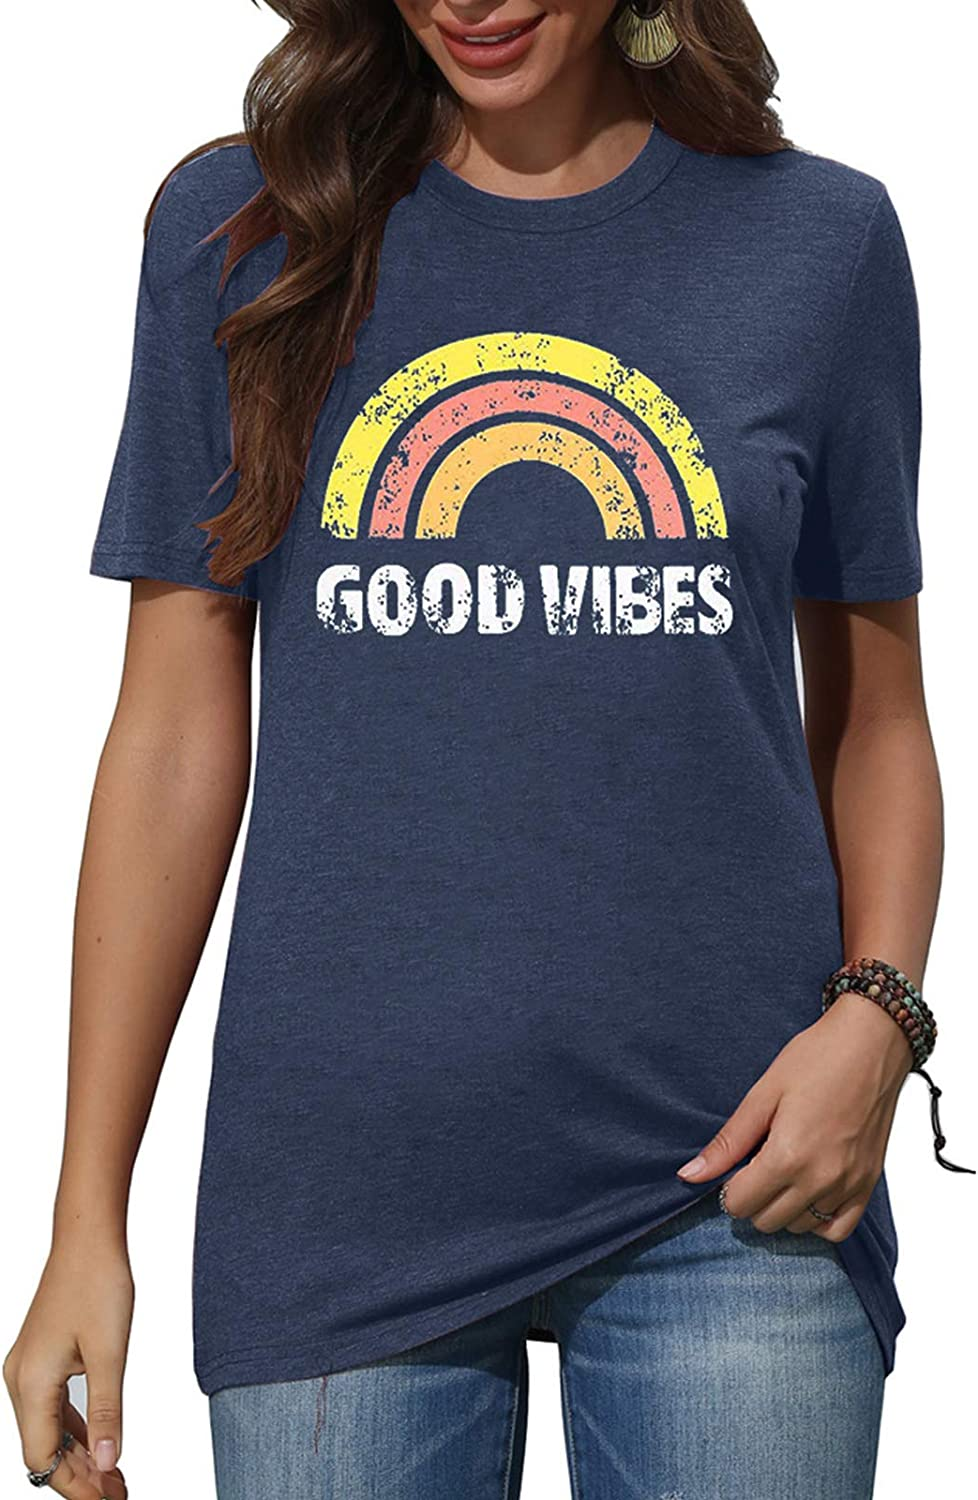 Womens Funny Graphic T-Shirts Letter Print Short Sleeve O Neck Summer Casual Tees Tops